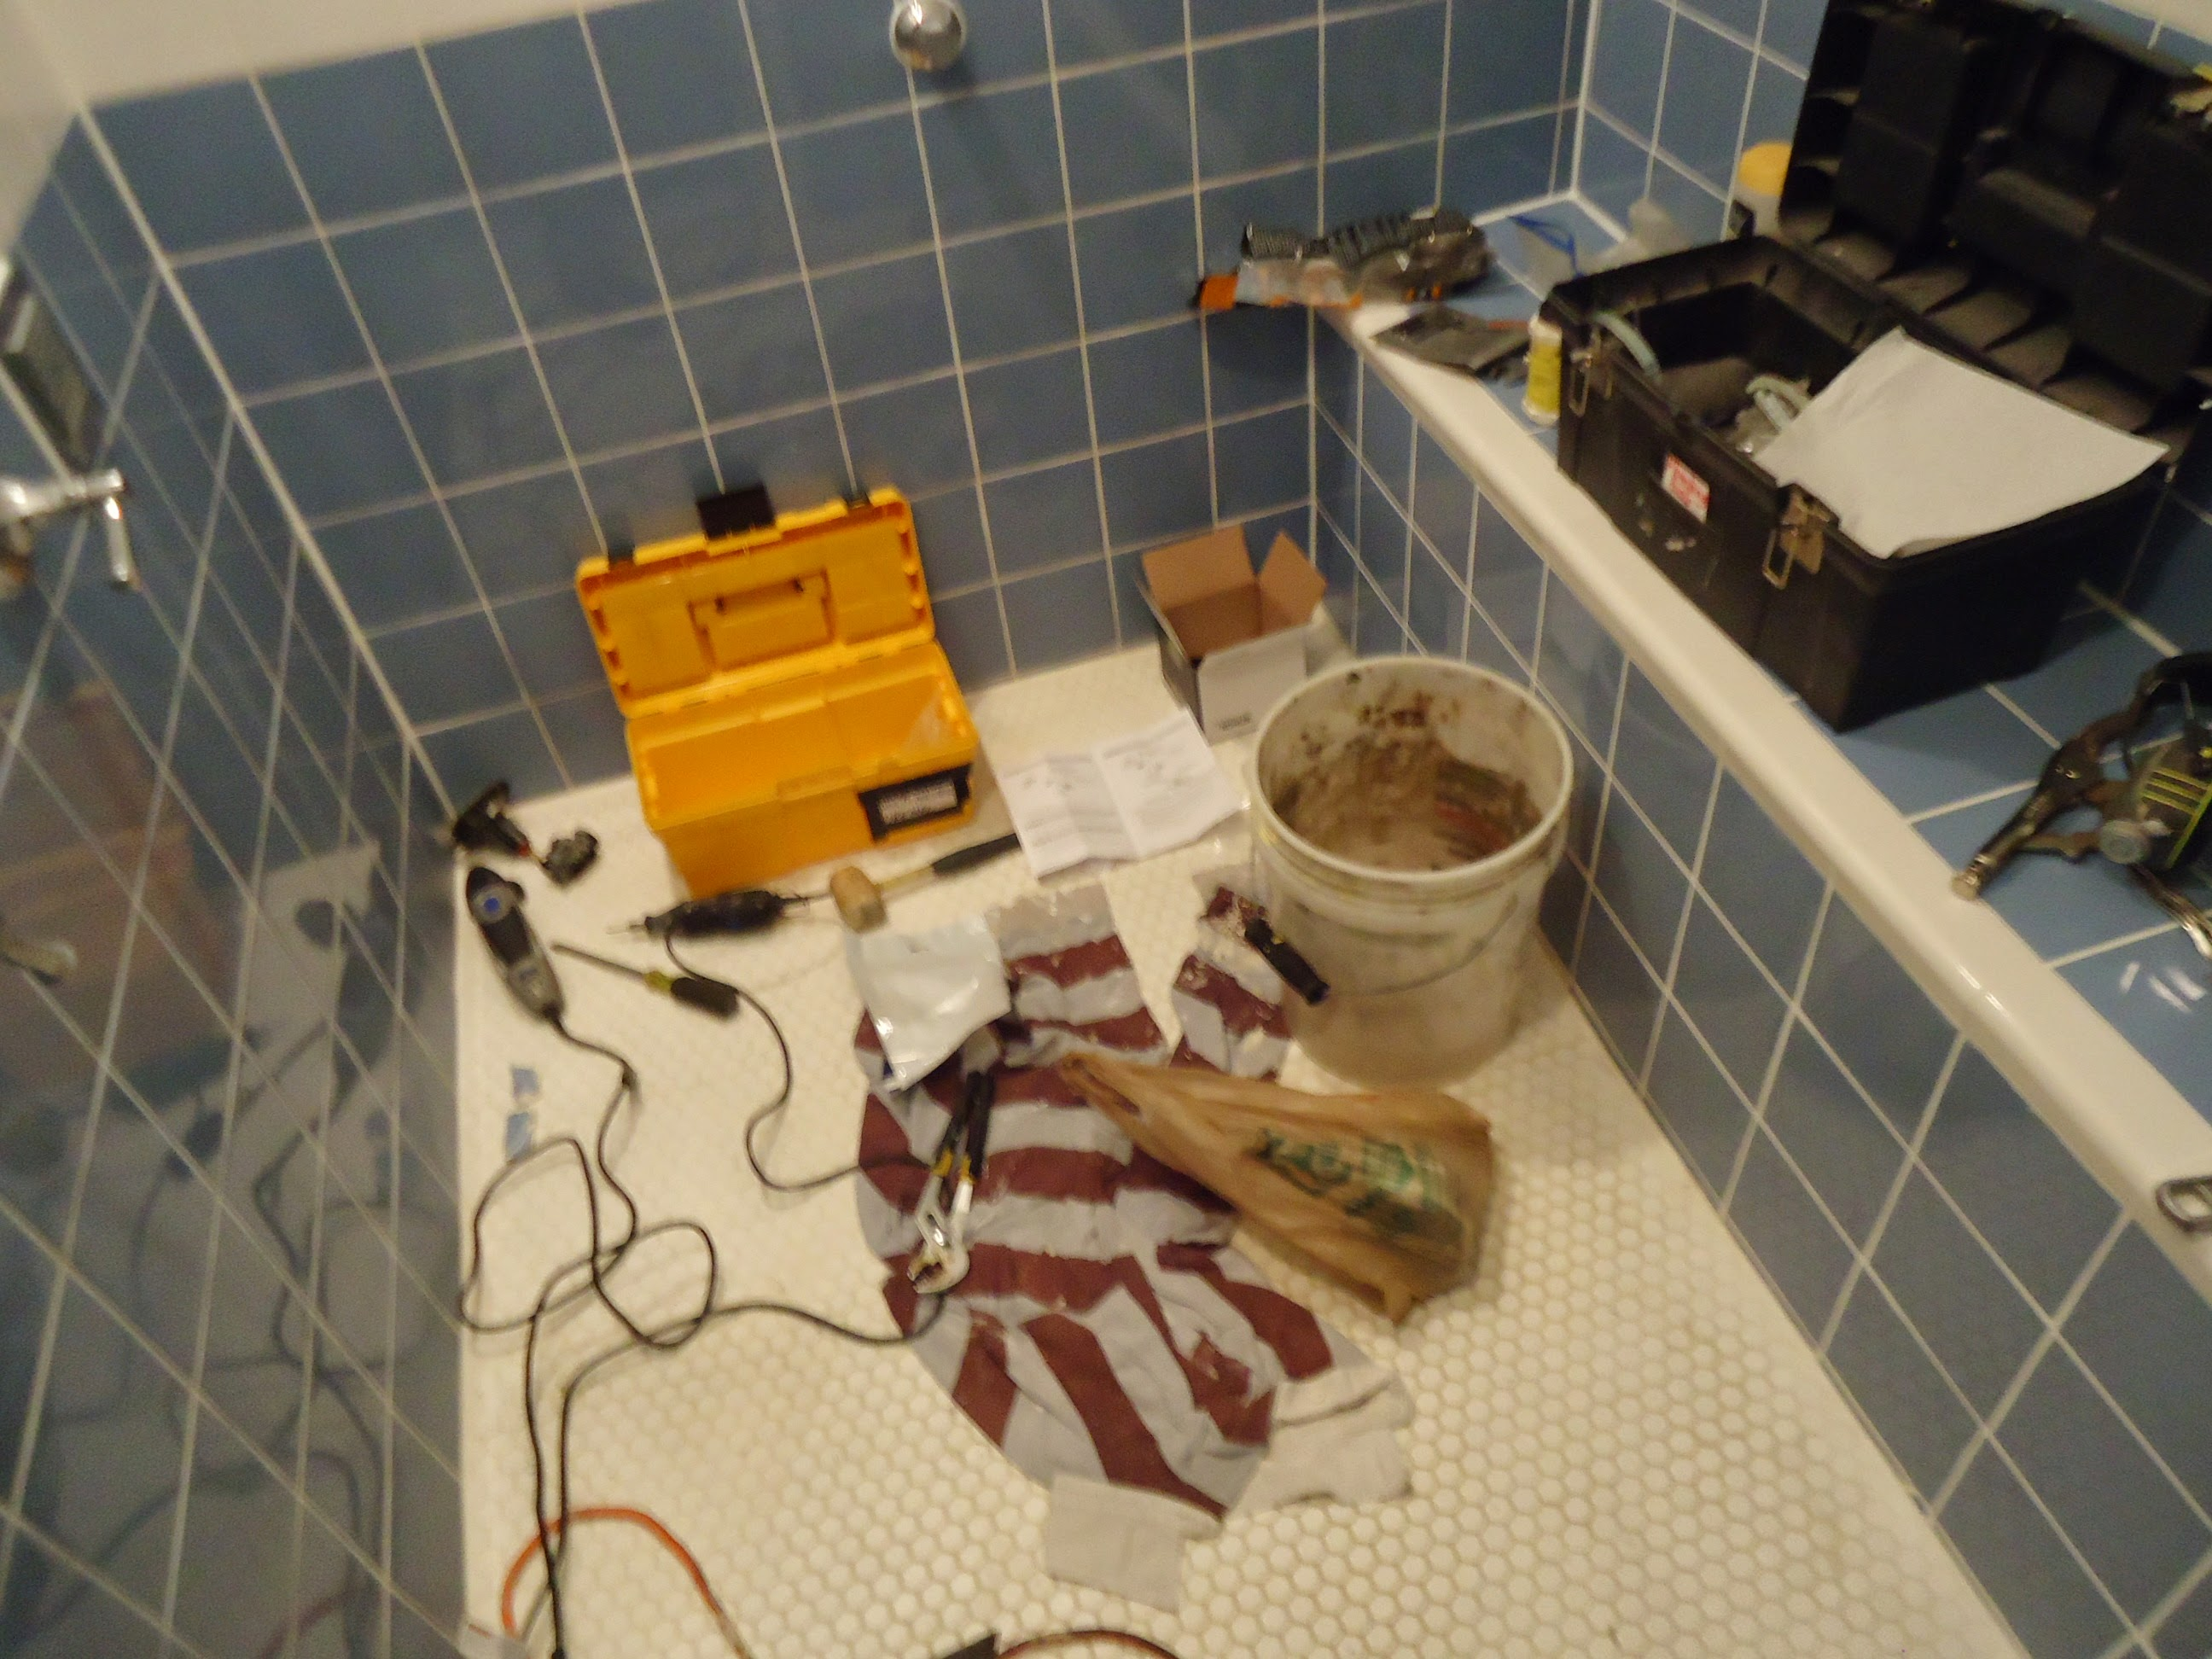 filekohler shower valve replacement tools on floor of showerjpg